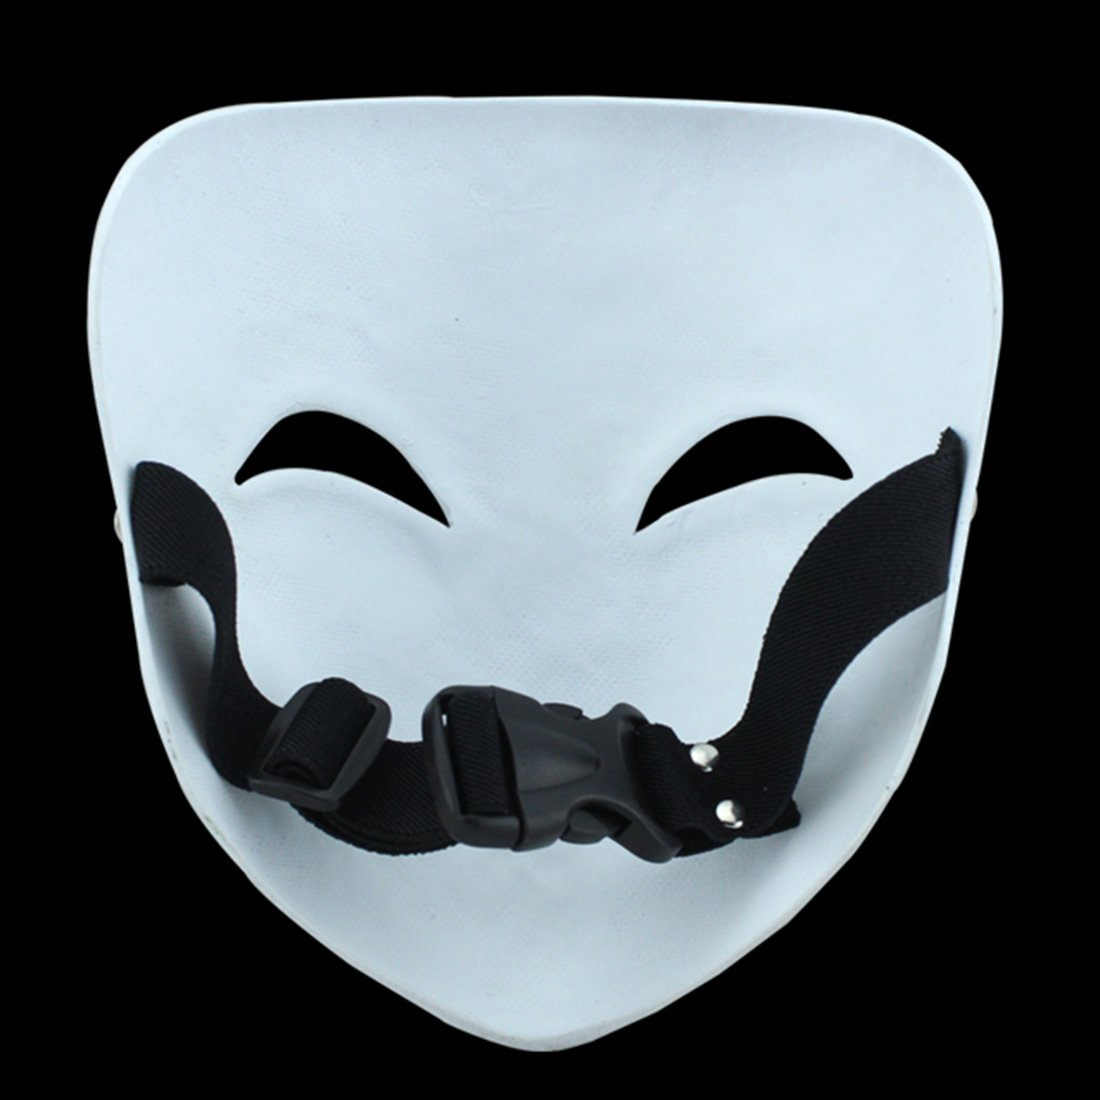 YUFENG Resin Masks Halloween Collector Props The Film Theme Black Bullets Hiruko Smiley Mask (Hiruko smile mask) by YUFENG